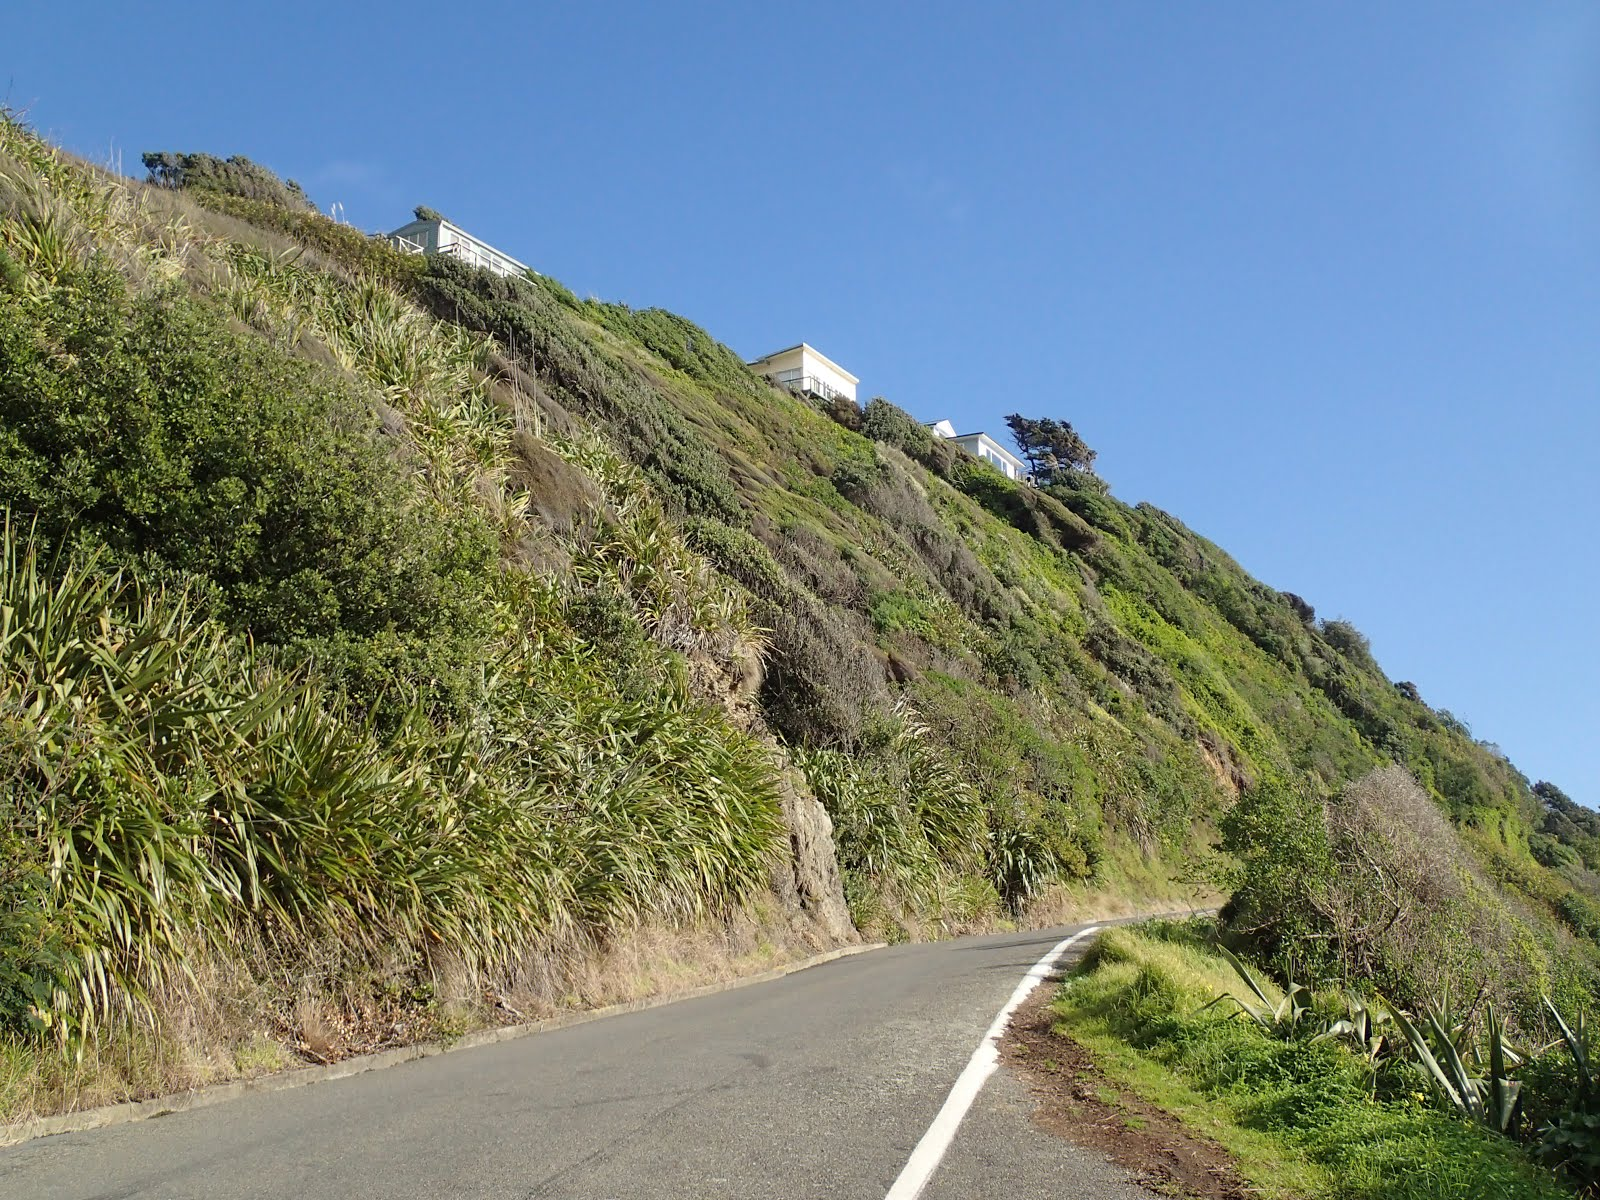 Road down to Pukerua Bay